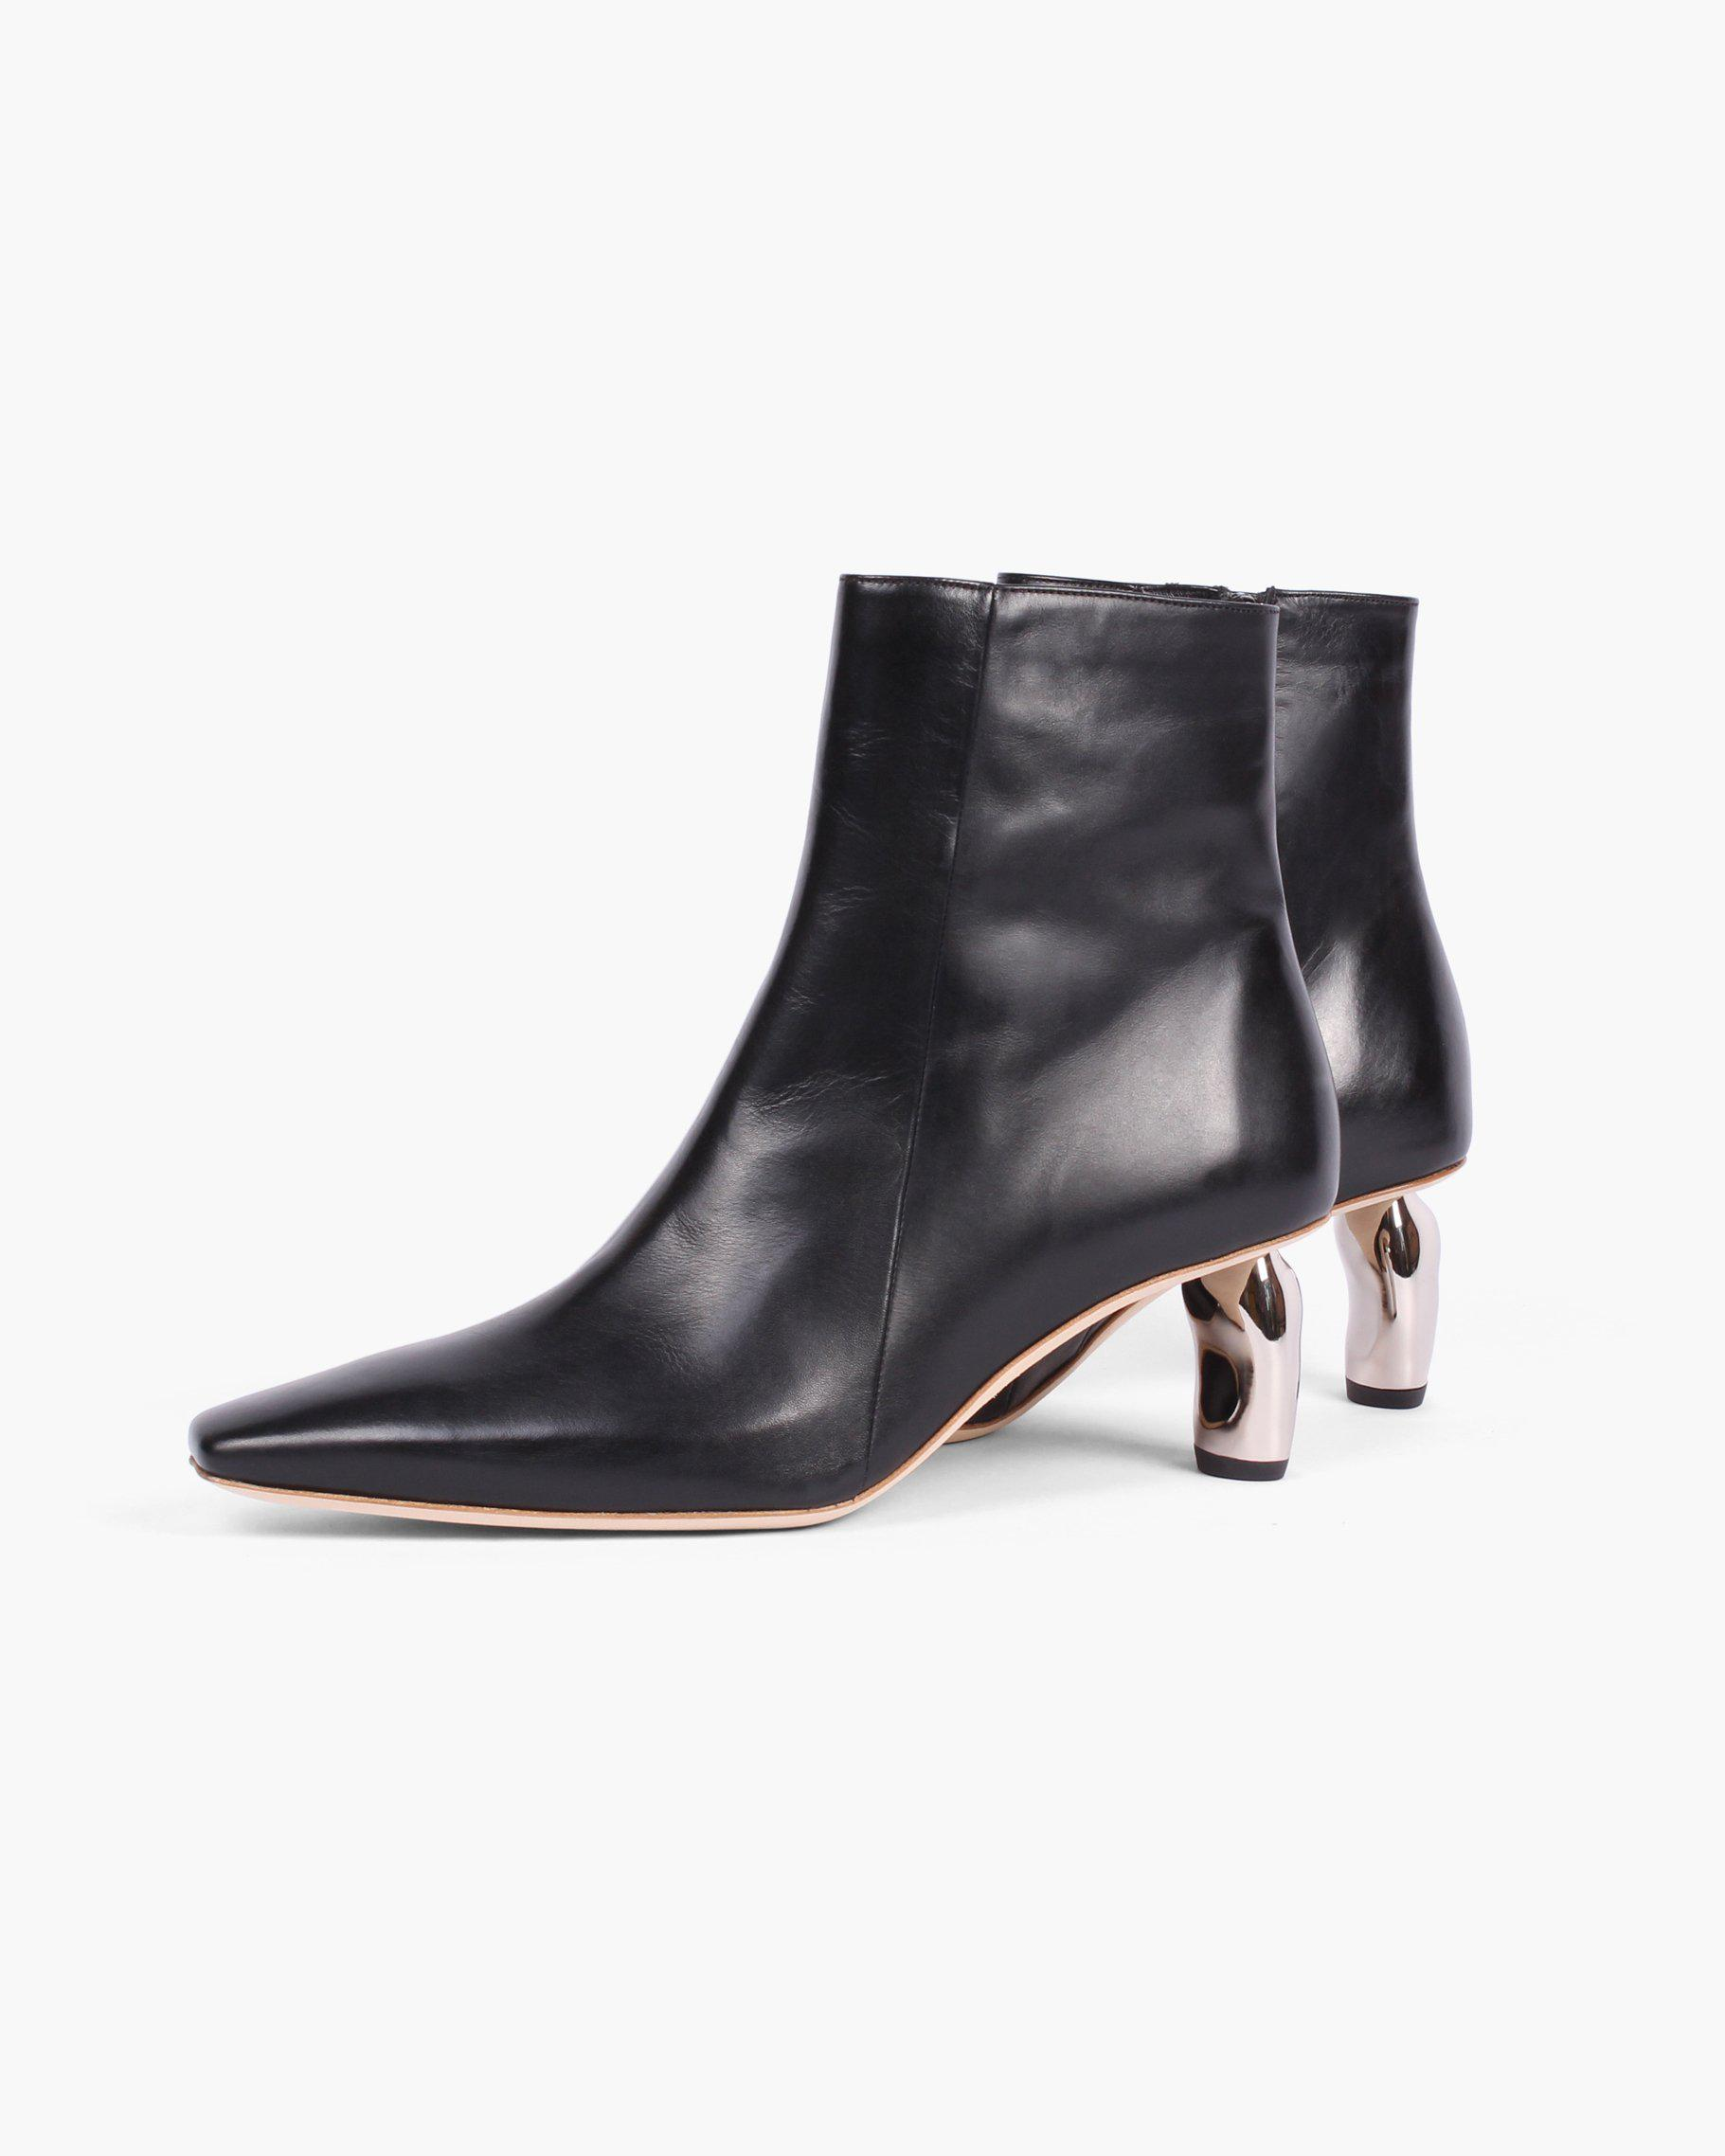 Annie Boots Leather Black with Silver Heels - SALE 2